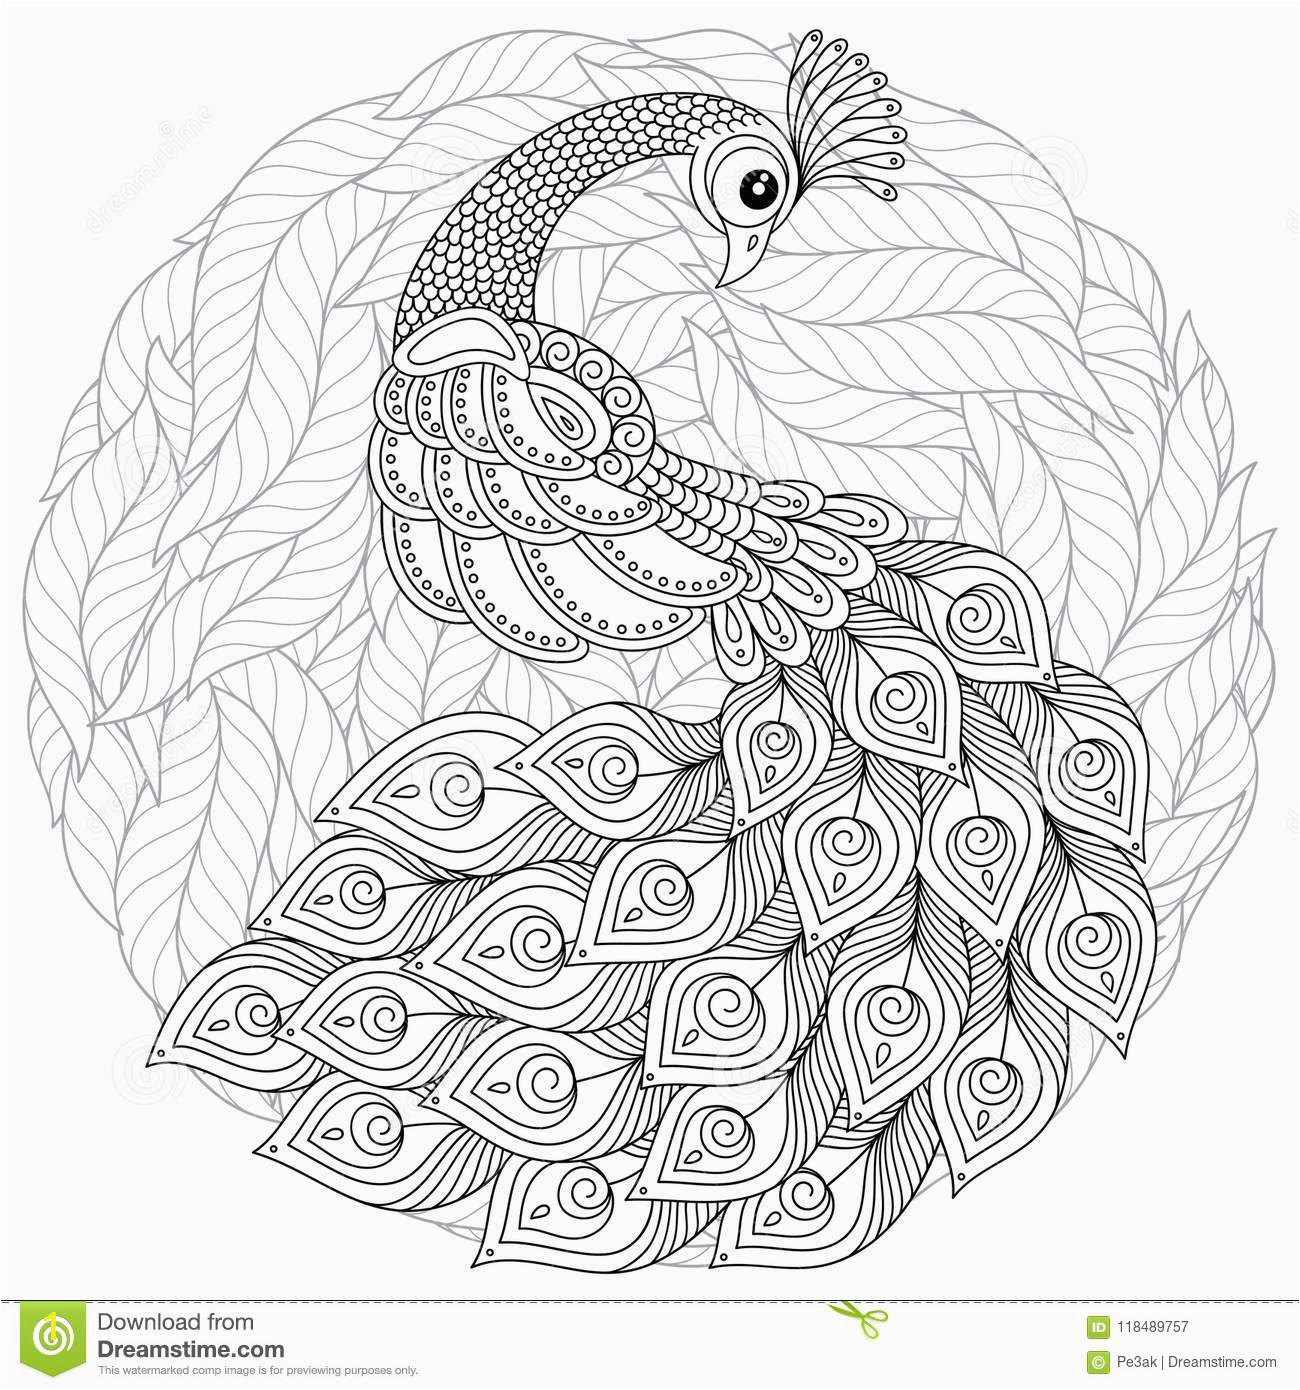 peacock zentangle style adult antistress coloring page black white hand drawn doodle book